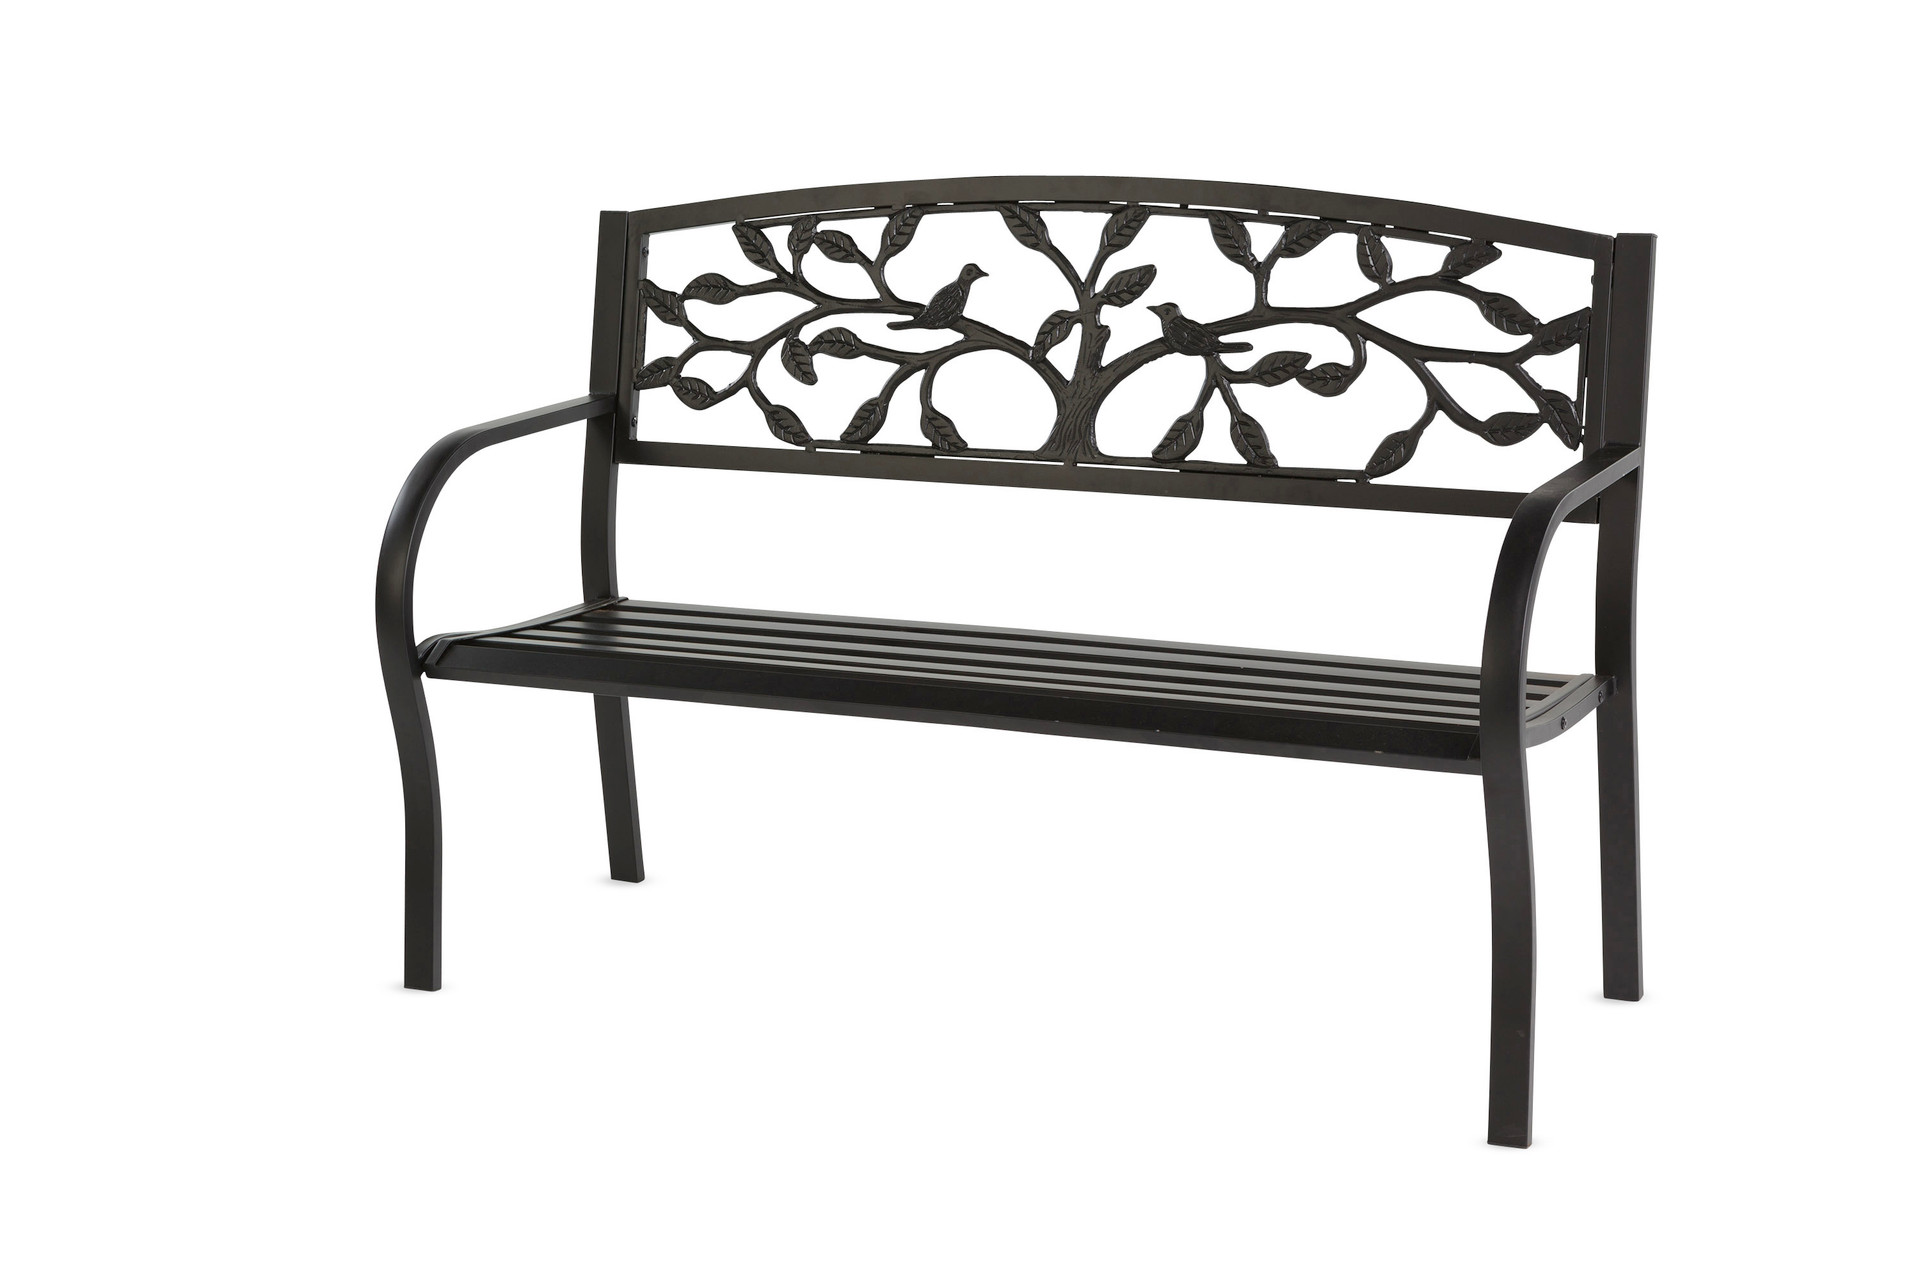 Picture of: Tree Of Life Metal Garden Bench Black Trees N Trends Home Fashion More